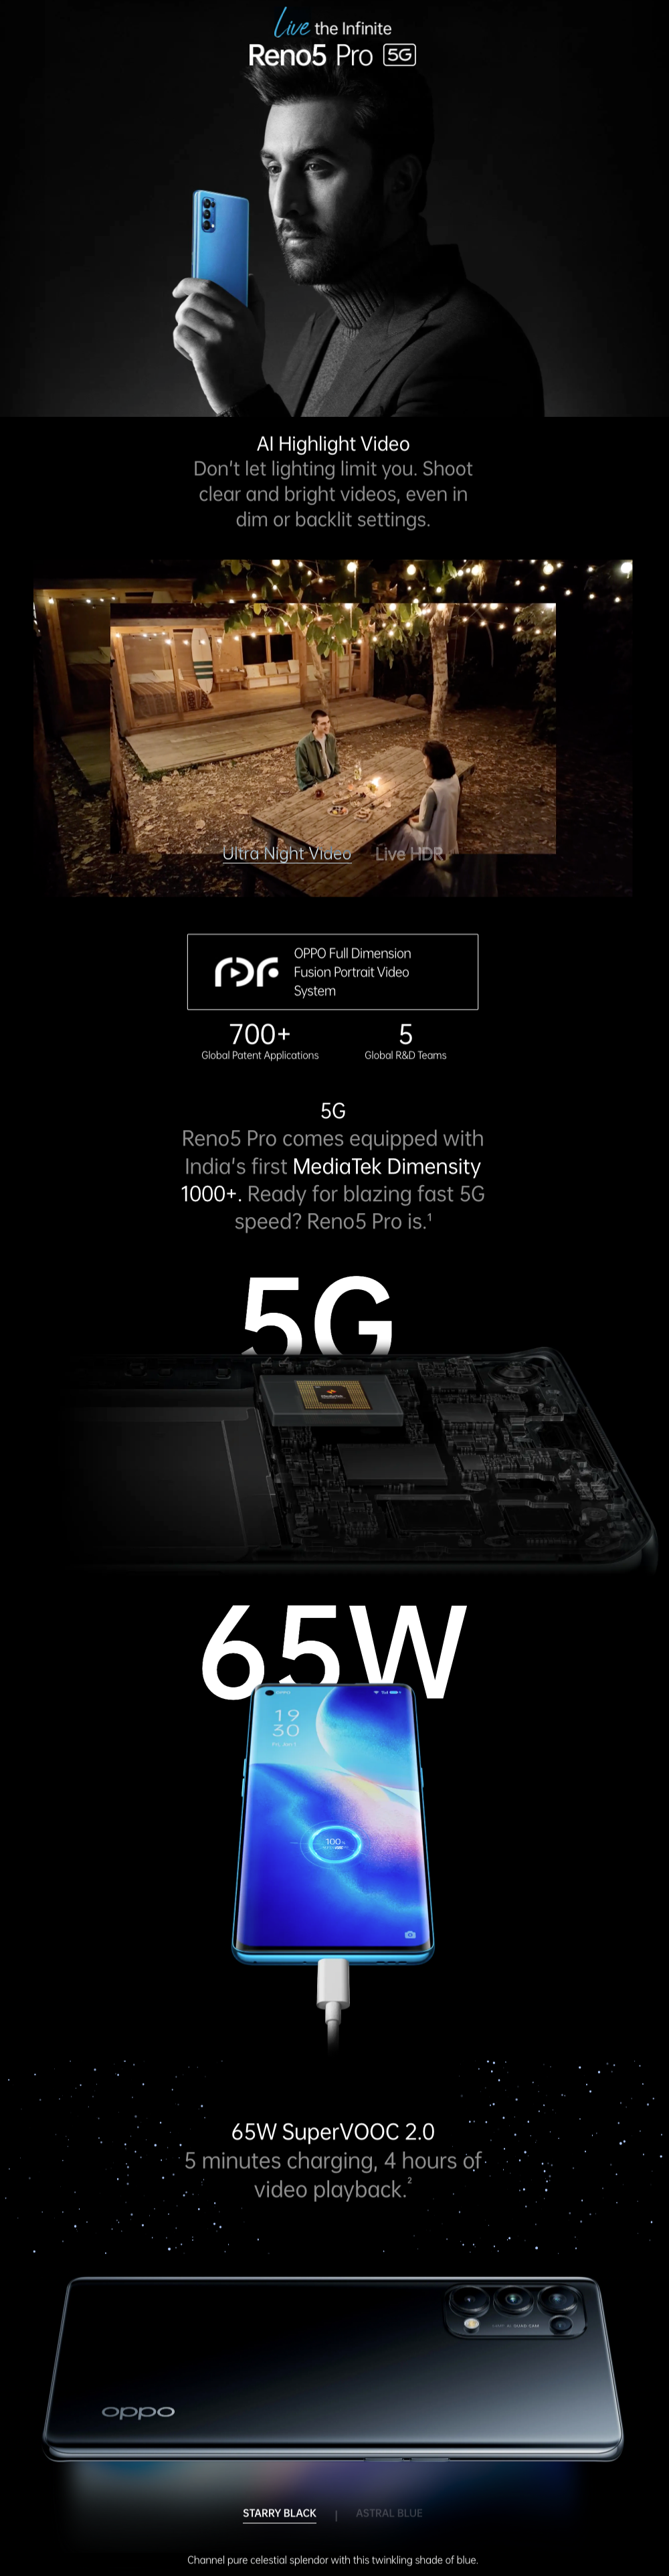 1-lp-opporeno5pro5g_update.png